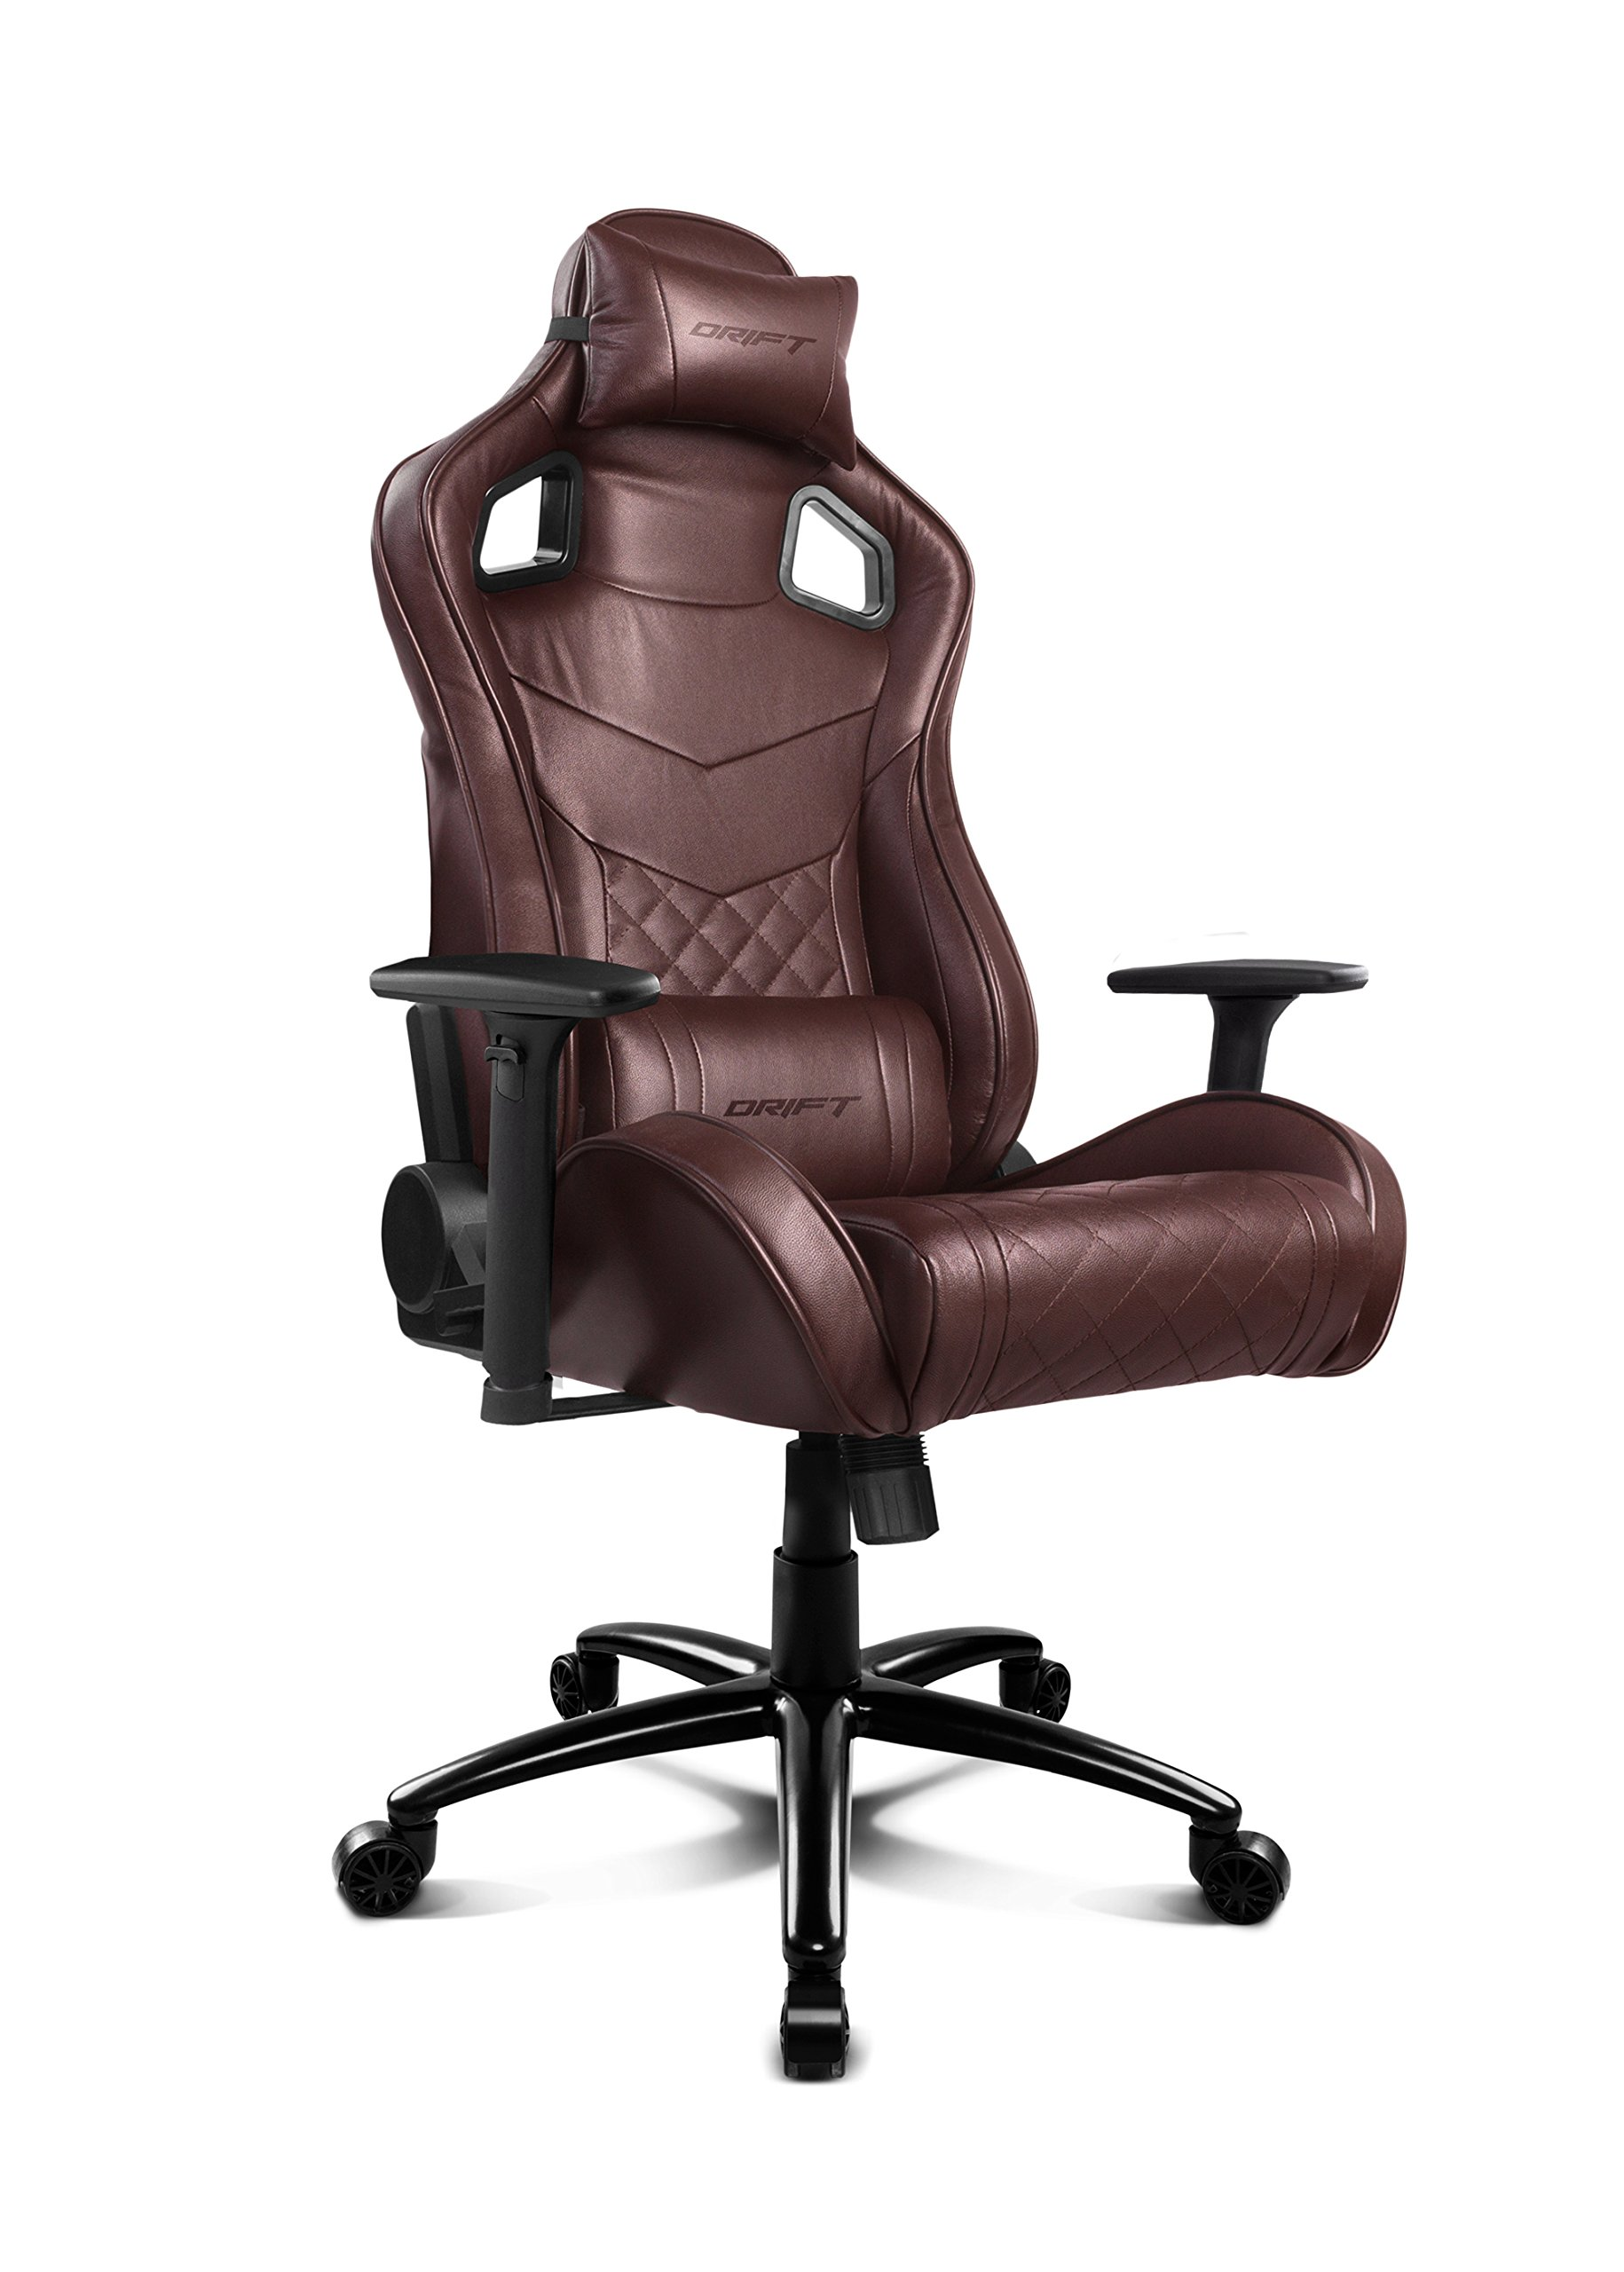 Drift DR450BW – Silla Gaming Profesional, (Poilipiel Alta Calidad, Ergonómica), Color Marrrón